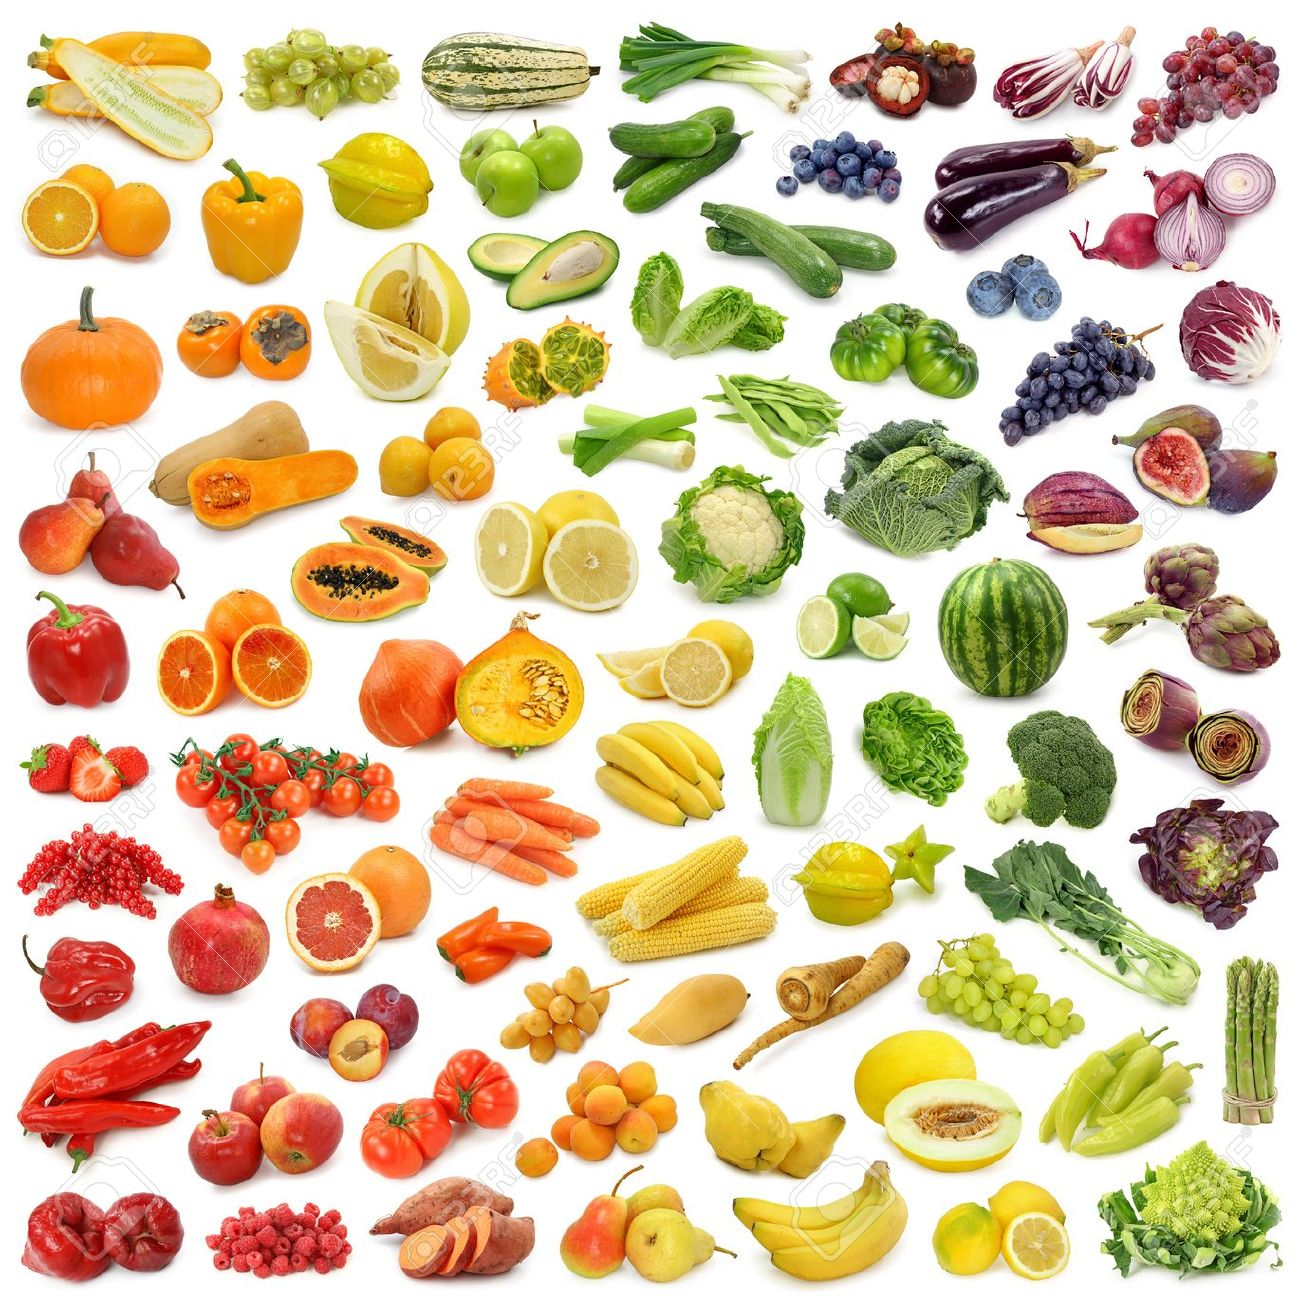 Rainbow collection of fruits and vegetables stock photo picture and rainbow collection of fruits and vegetables stock photo 10313971 altavistaventures Choice Image